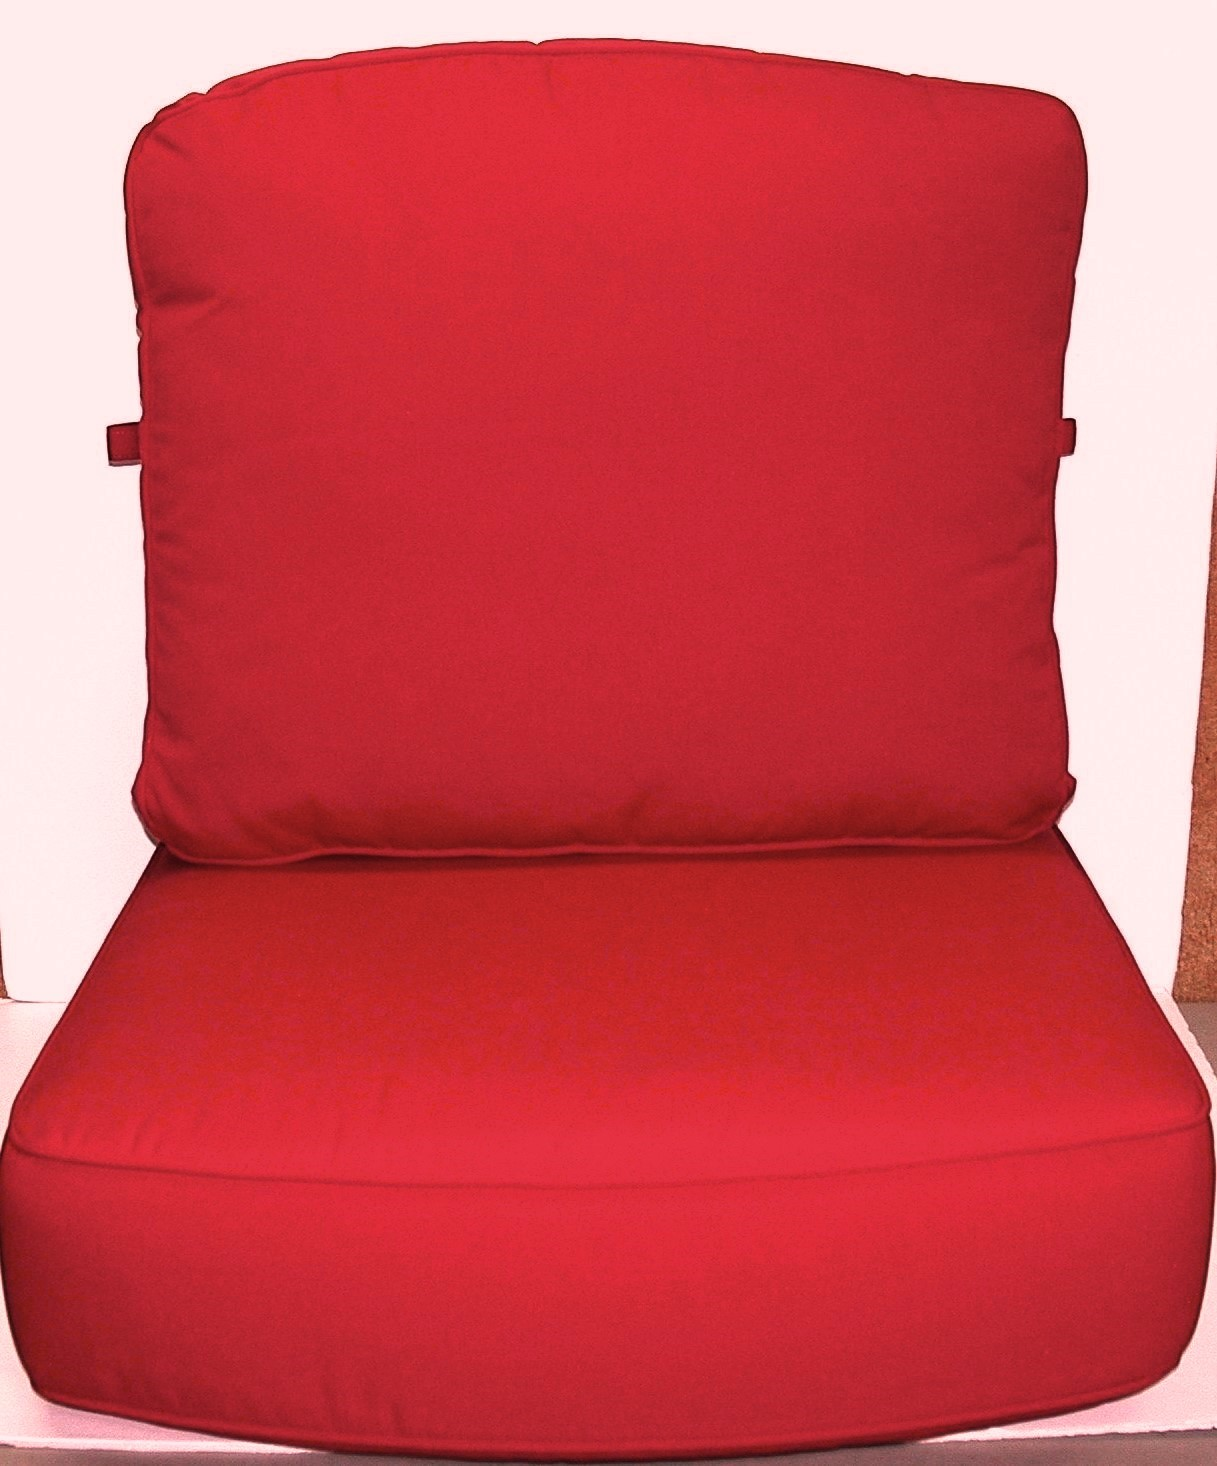 24x24 Outdoor Chair Cushions 2 Pc Outdoor Deep Seat Set Red Sunbrella 26 X 20 X 4